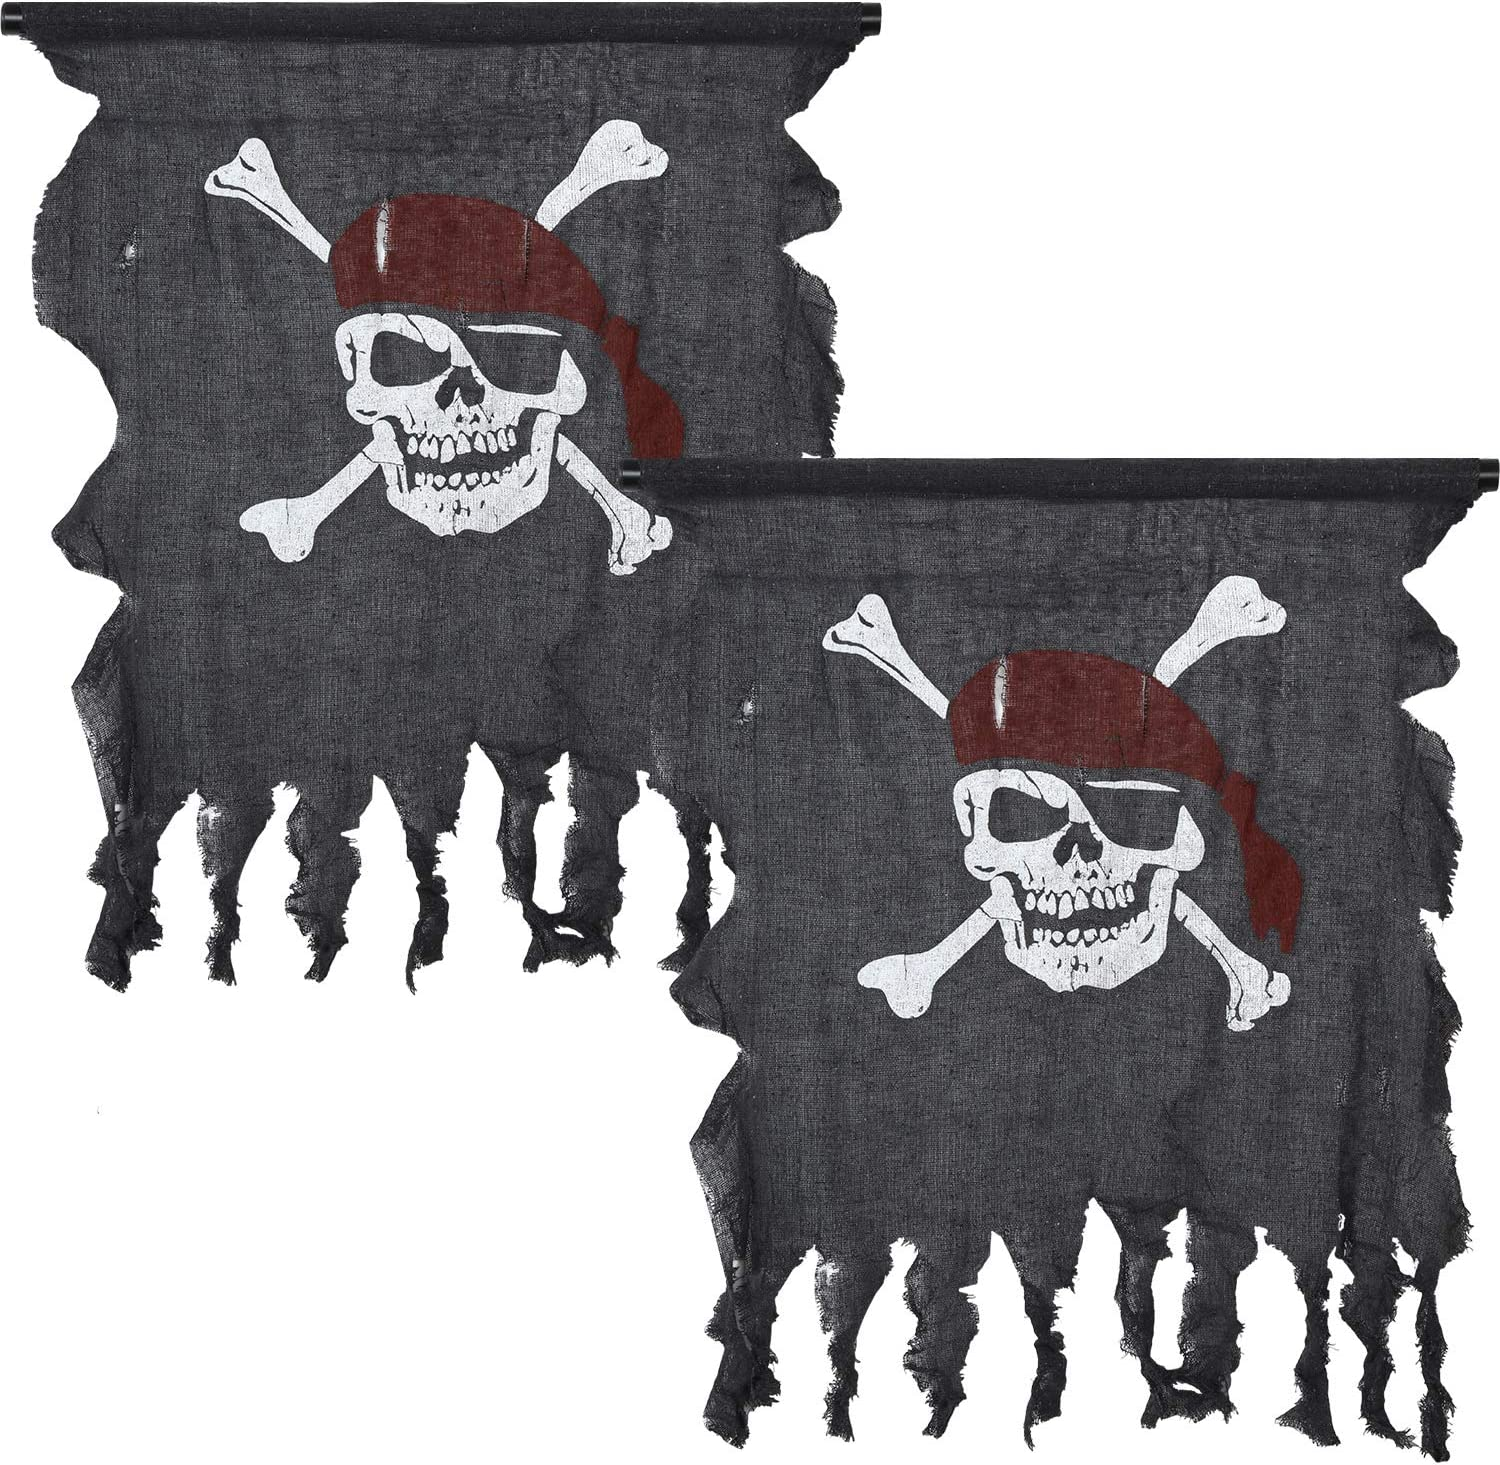 Tatuo 2 Pieces Large Size Pirate Flag Retro Weathered Linen Pirate Flag Vintage Pirate Flag for Halloween Decorations Pirate Party Supplies, 29.5 x 35.4 Inch